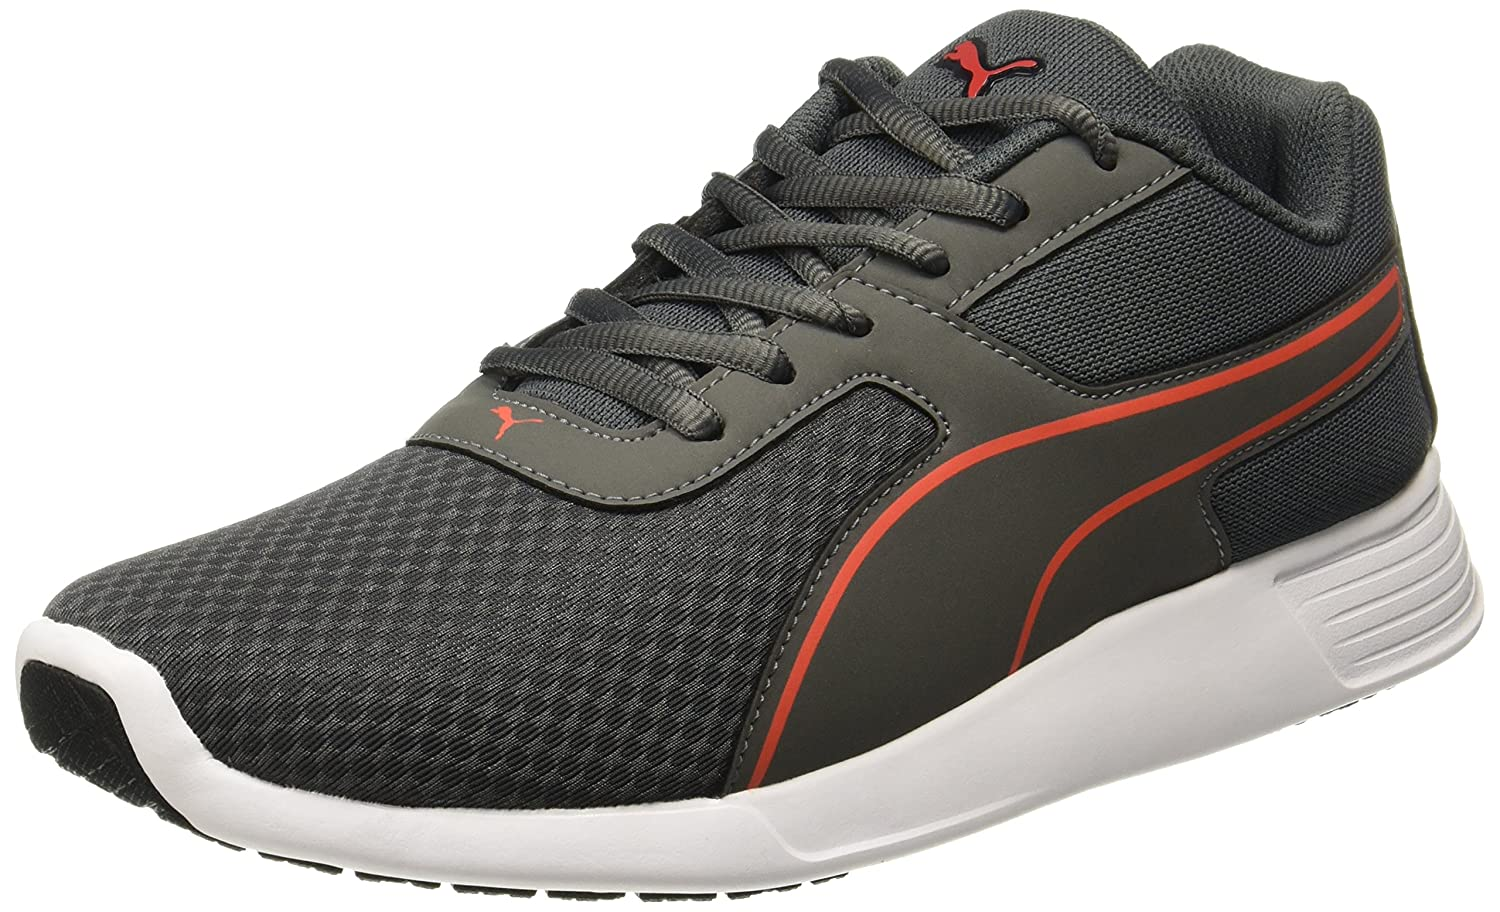 Puma Men s KOR Idp Dark Shadow-Quiet Shade-Cherry Tomato Sneakers - 6  UK India (39 EU)(36777103)  Buy Online at Low Prices in India - Amazon.in f9d05606c